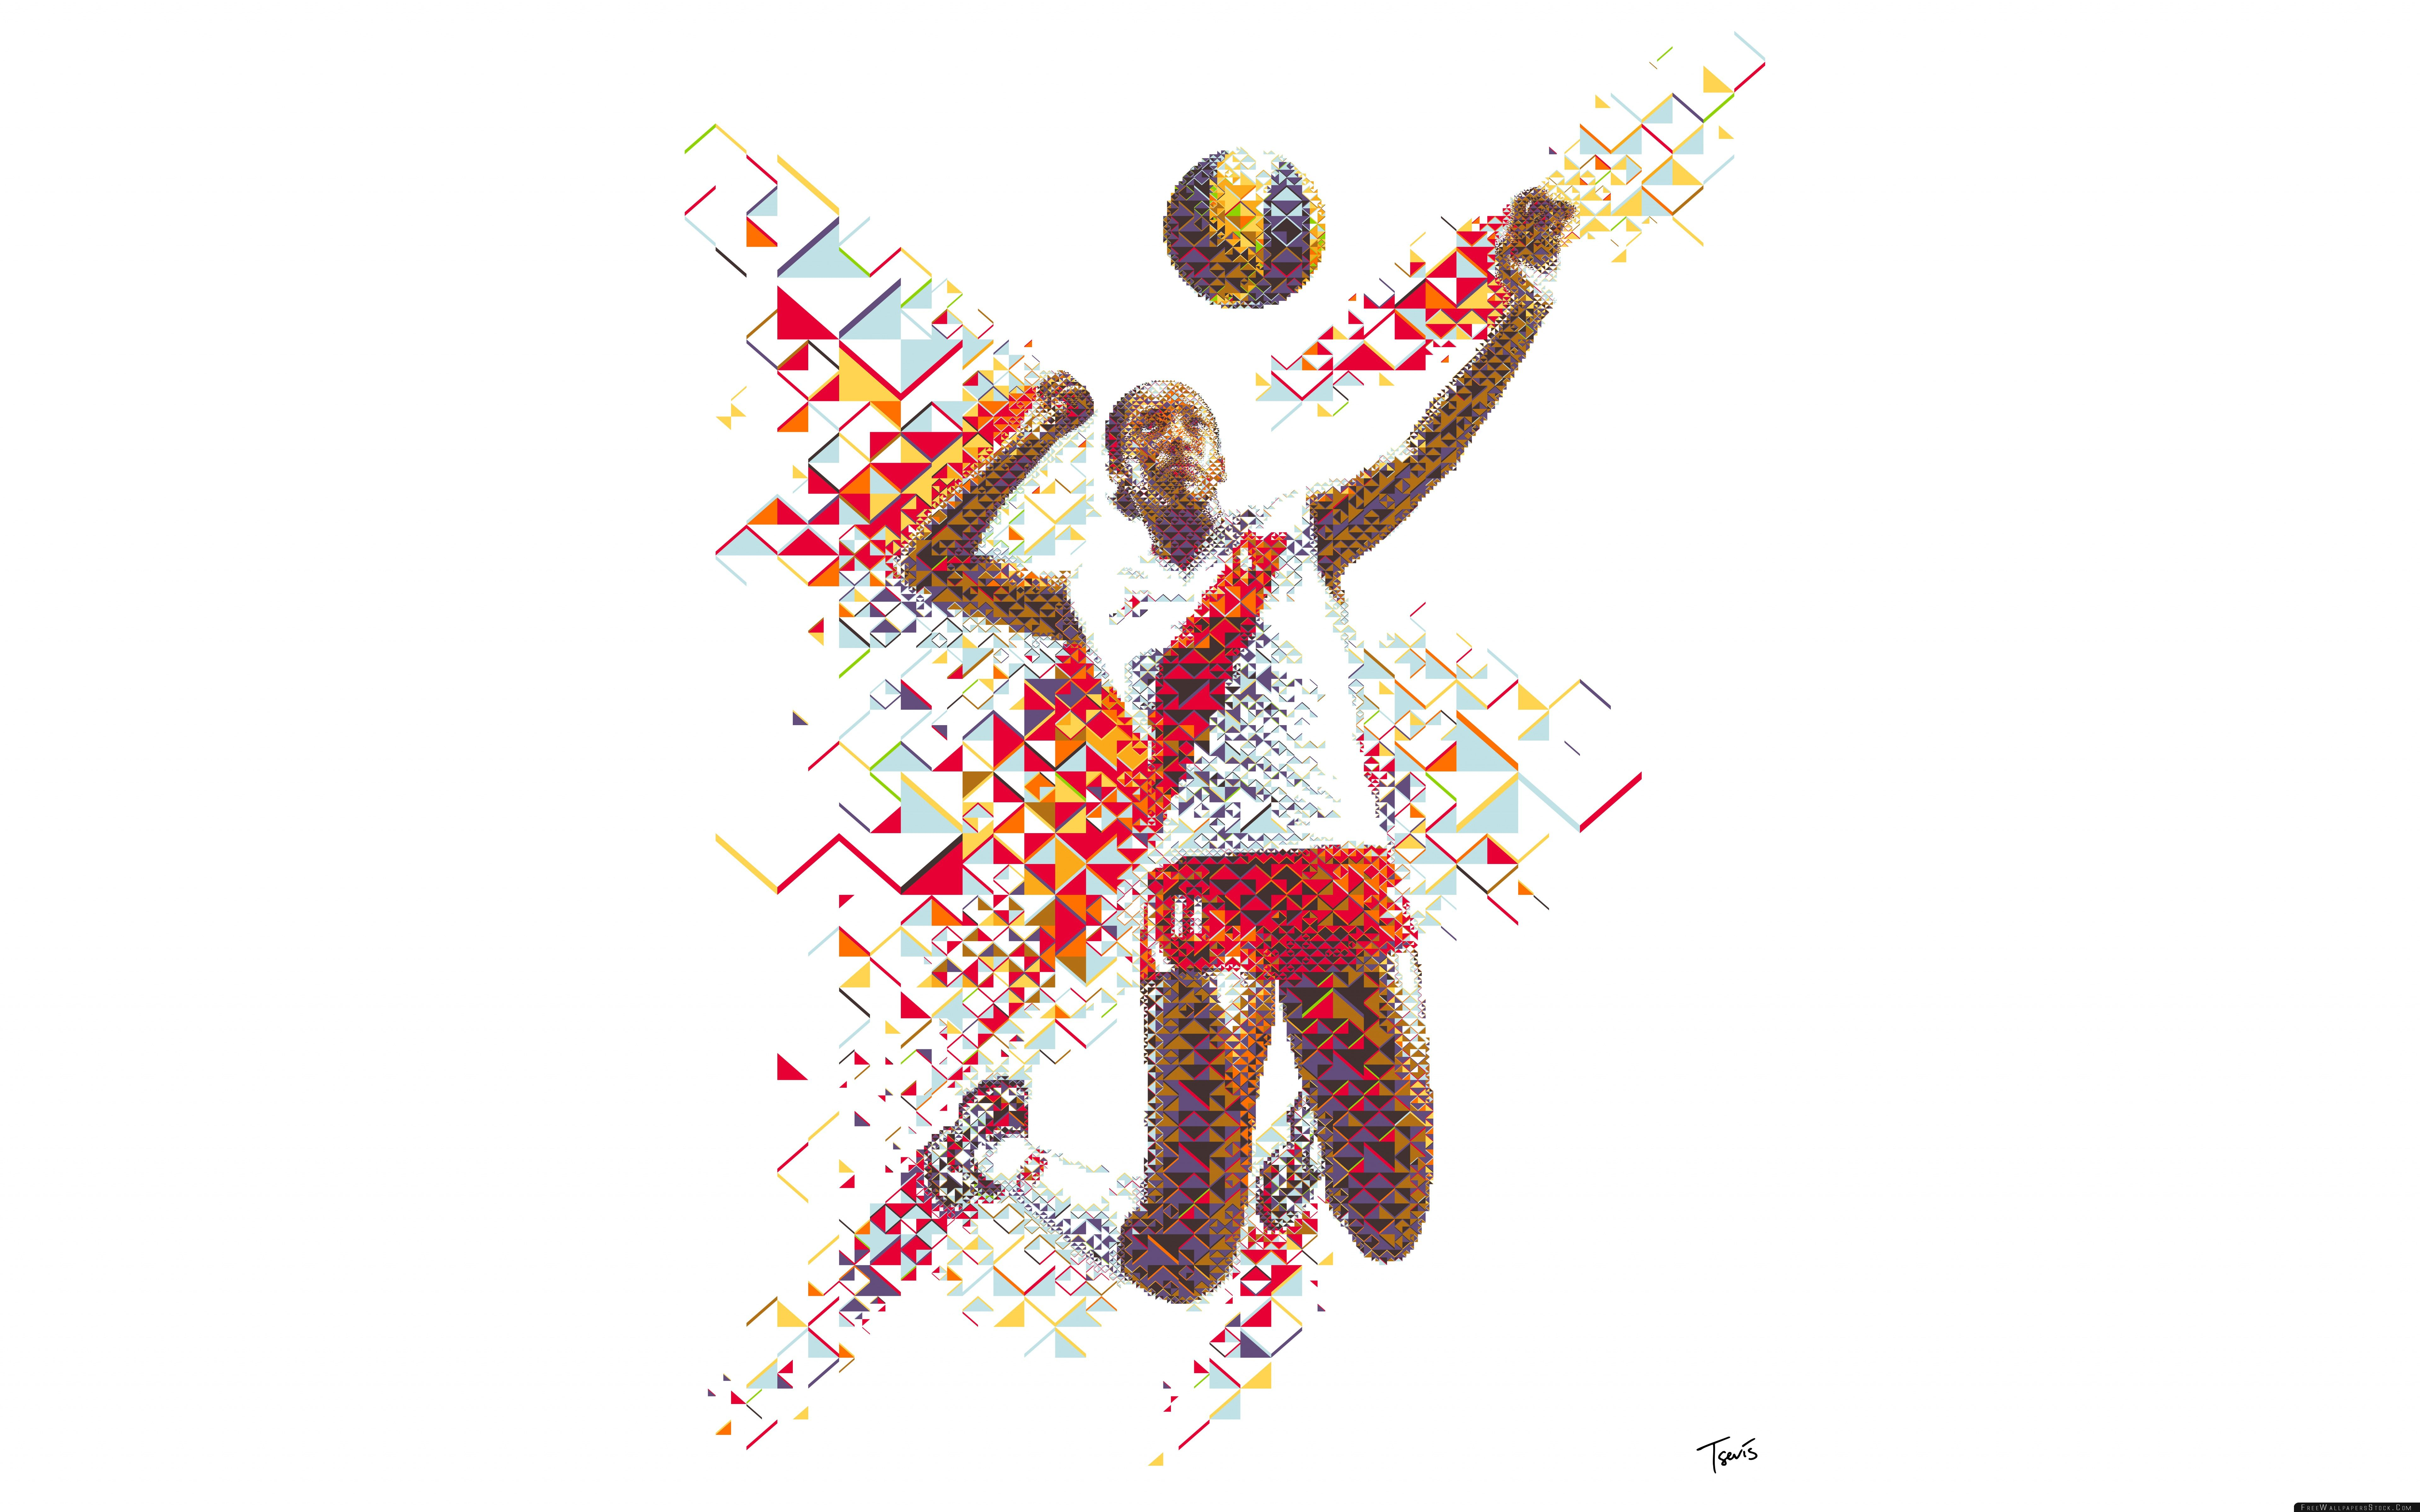 Download Free Wallpaper Volleyball Player